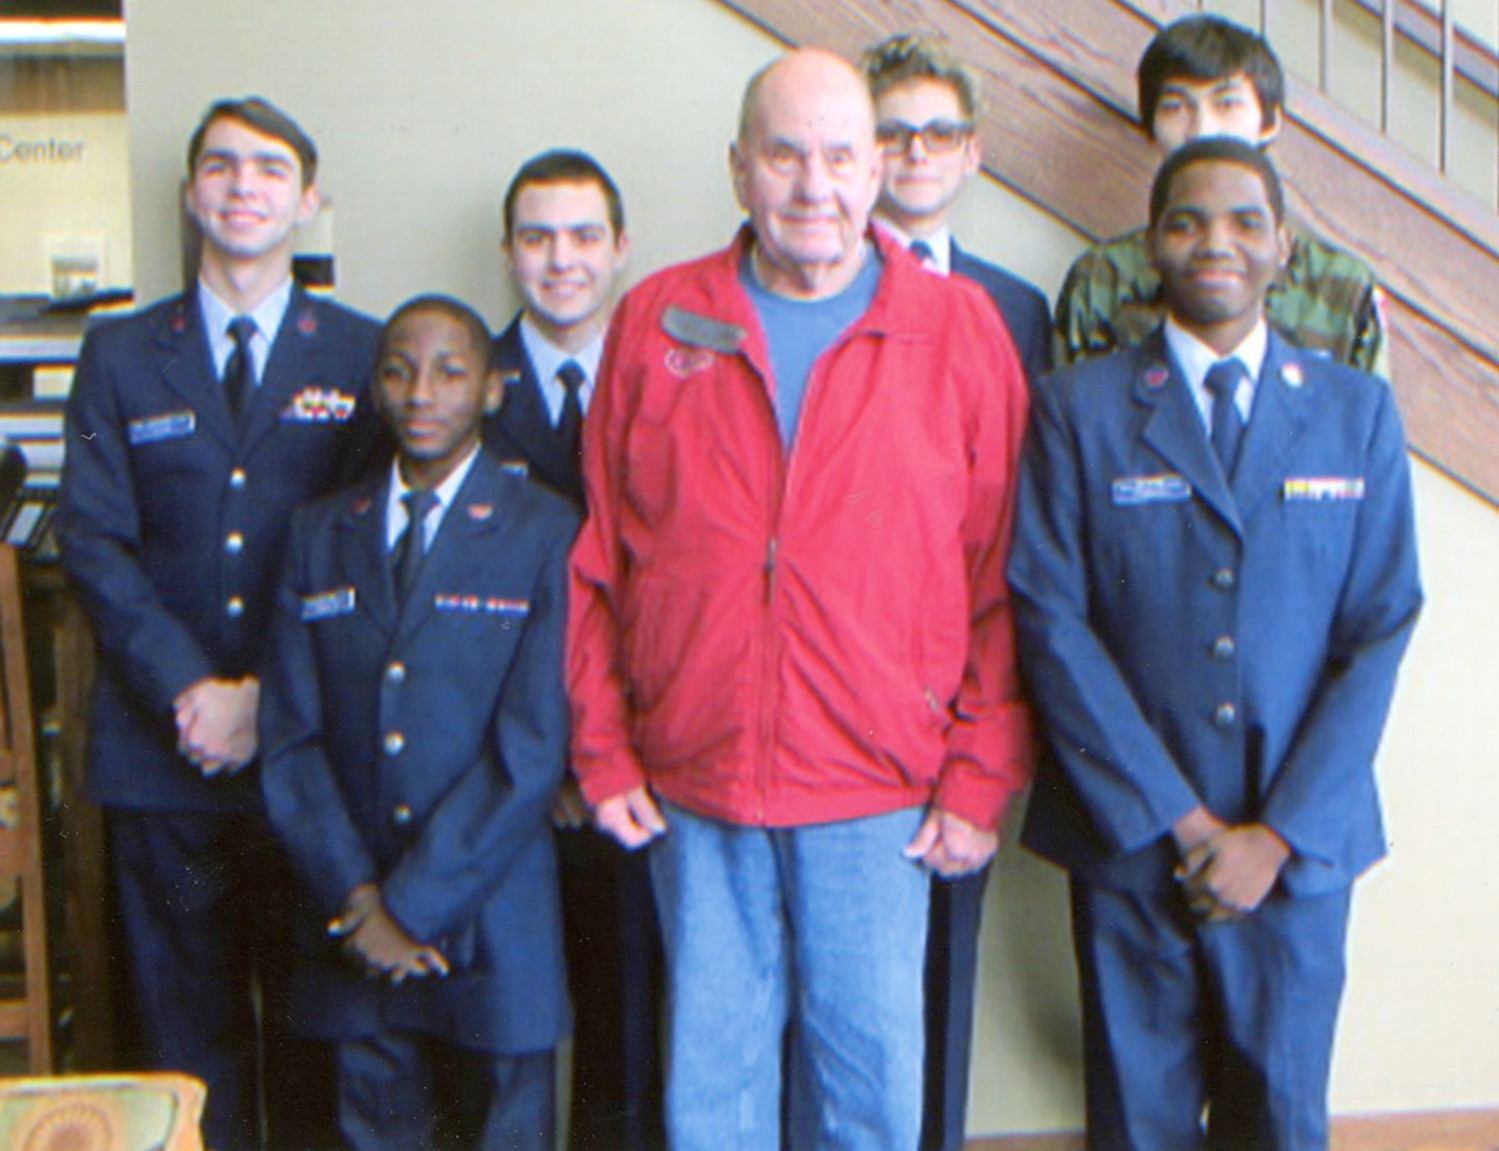 The Civil Air Patrol presented the colors at the recent dedication ceremony for the runway extension at the Cleveland Jetport. Cadets shown with Cleveland Mayor Tom Rowland include, from left, 1st Sgt. Trent Jones; Cadet Senior Airman Michael Robinson; Cadet Capt. Wilkie; Rowland, Cadet Senior Airman Philip Moshenskiy; Cadet Master Sgt. Garrett Robinson and Cadet Airman Matvei Batuev.